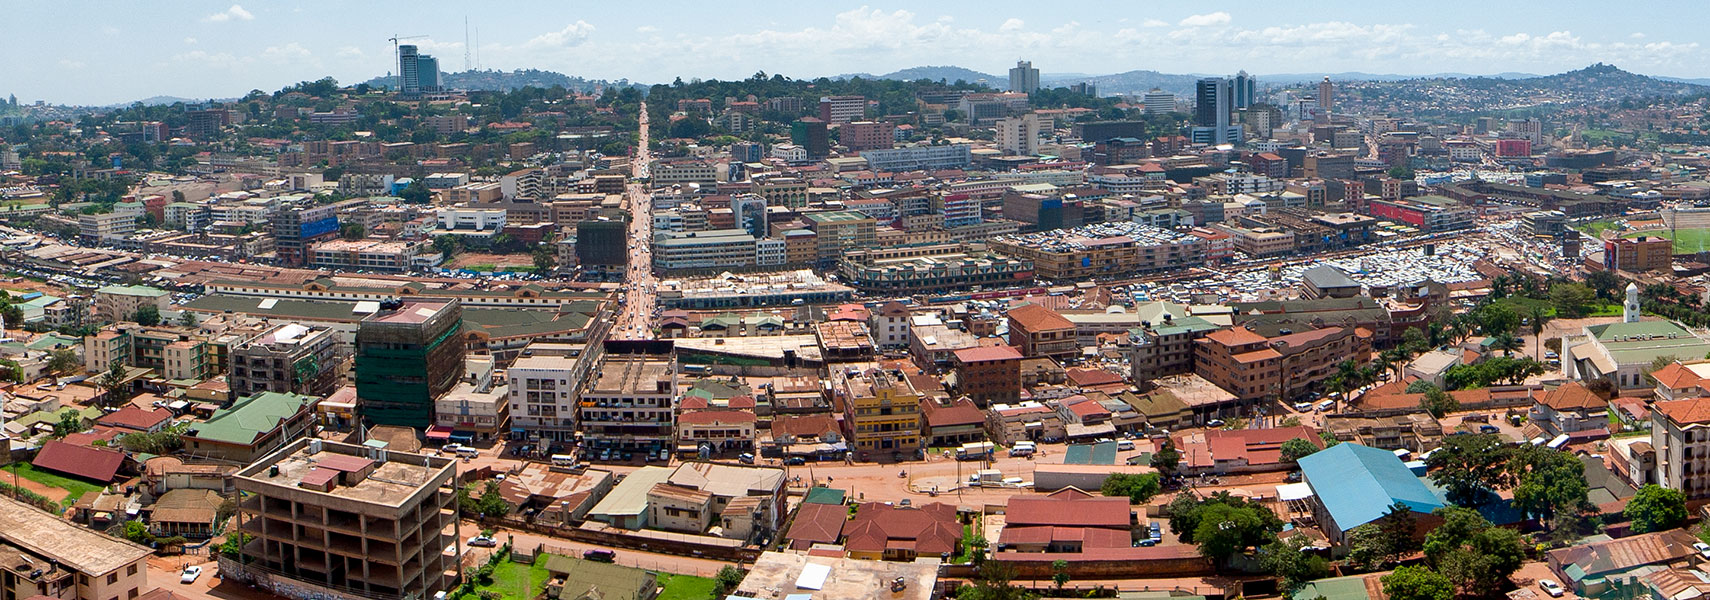 ___ satellite view and map of the city of kampala uganda